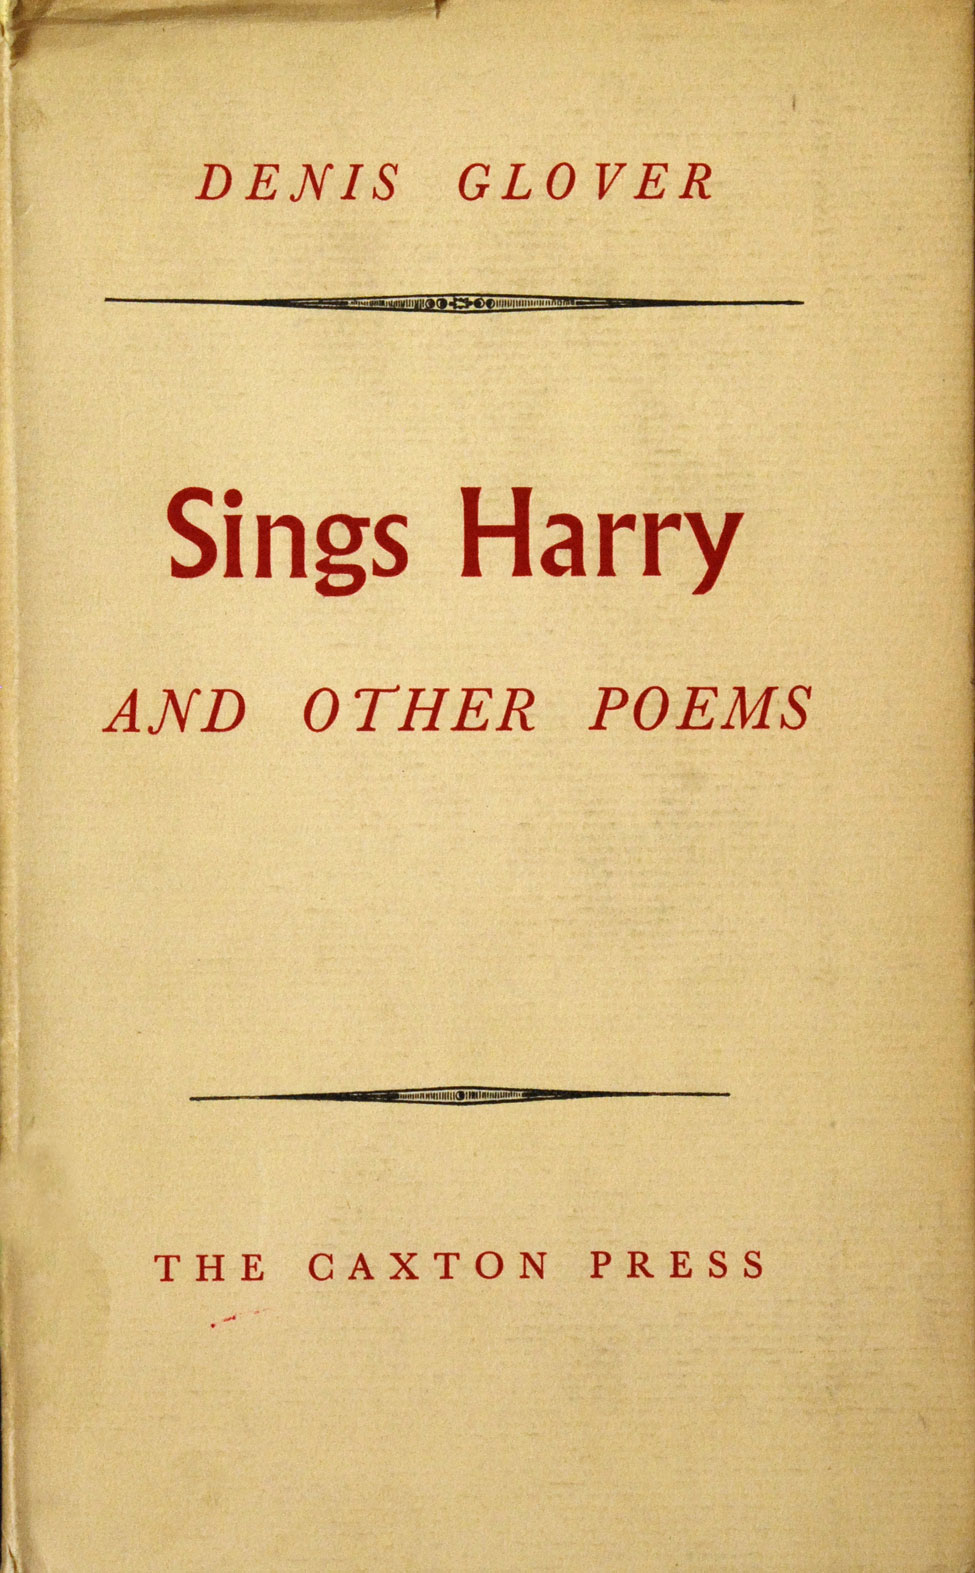 Denis Glover. Sings Harry and Other Poems. <i>Christchurch: The Caxton Press, 1951.</i>